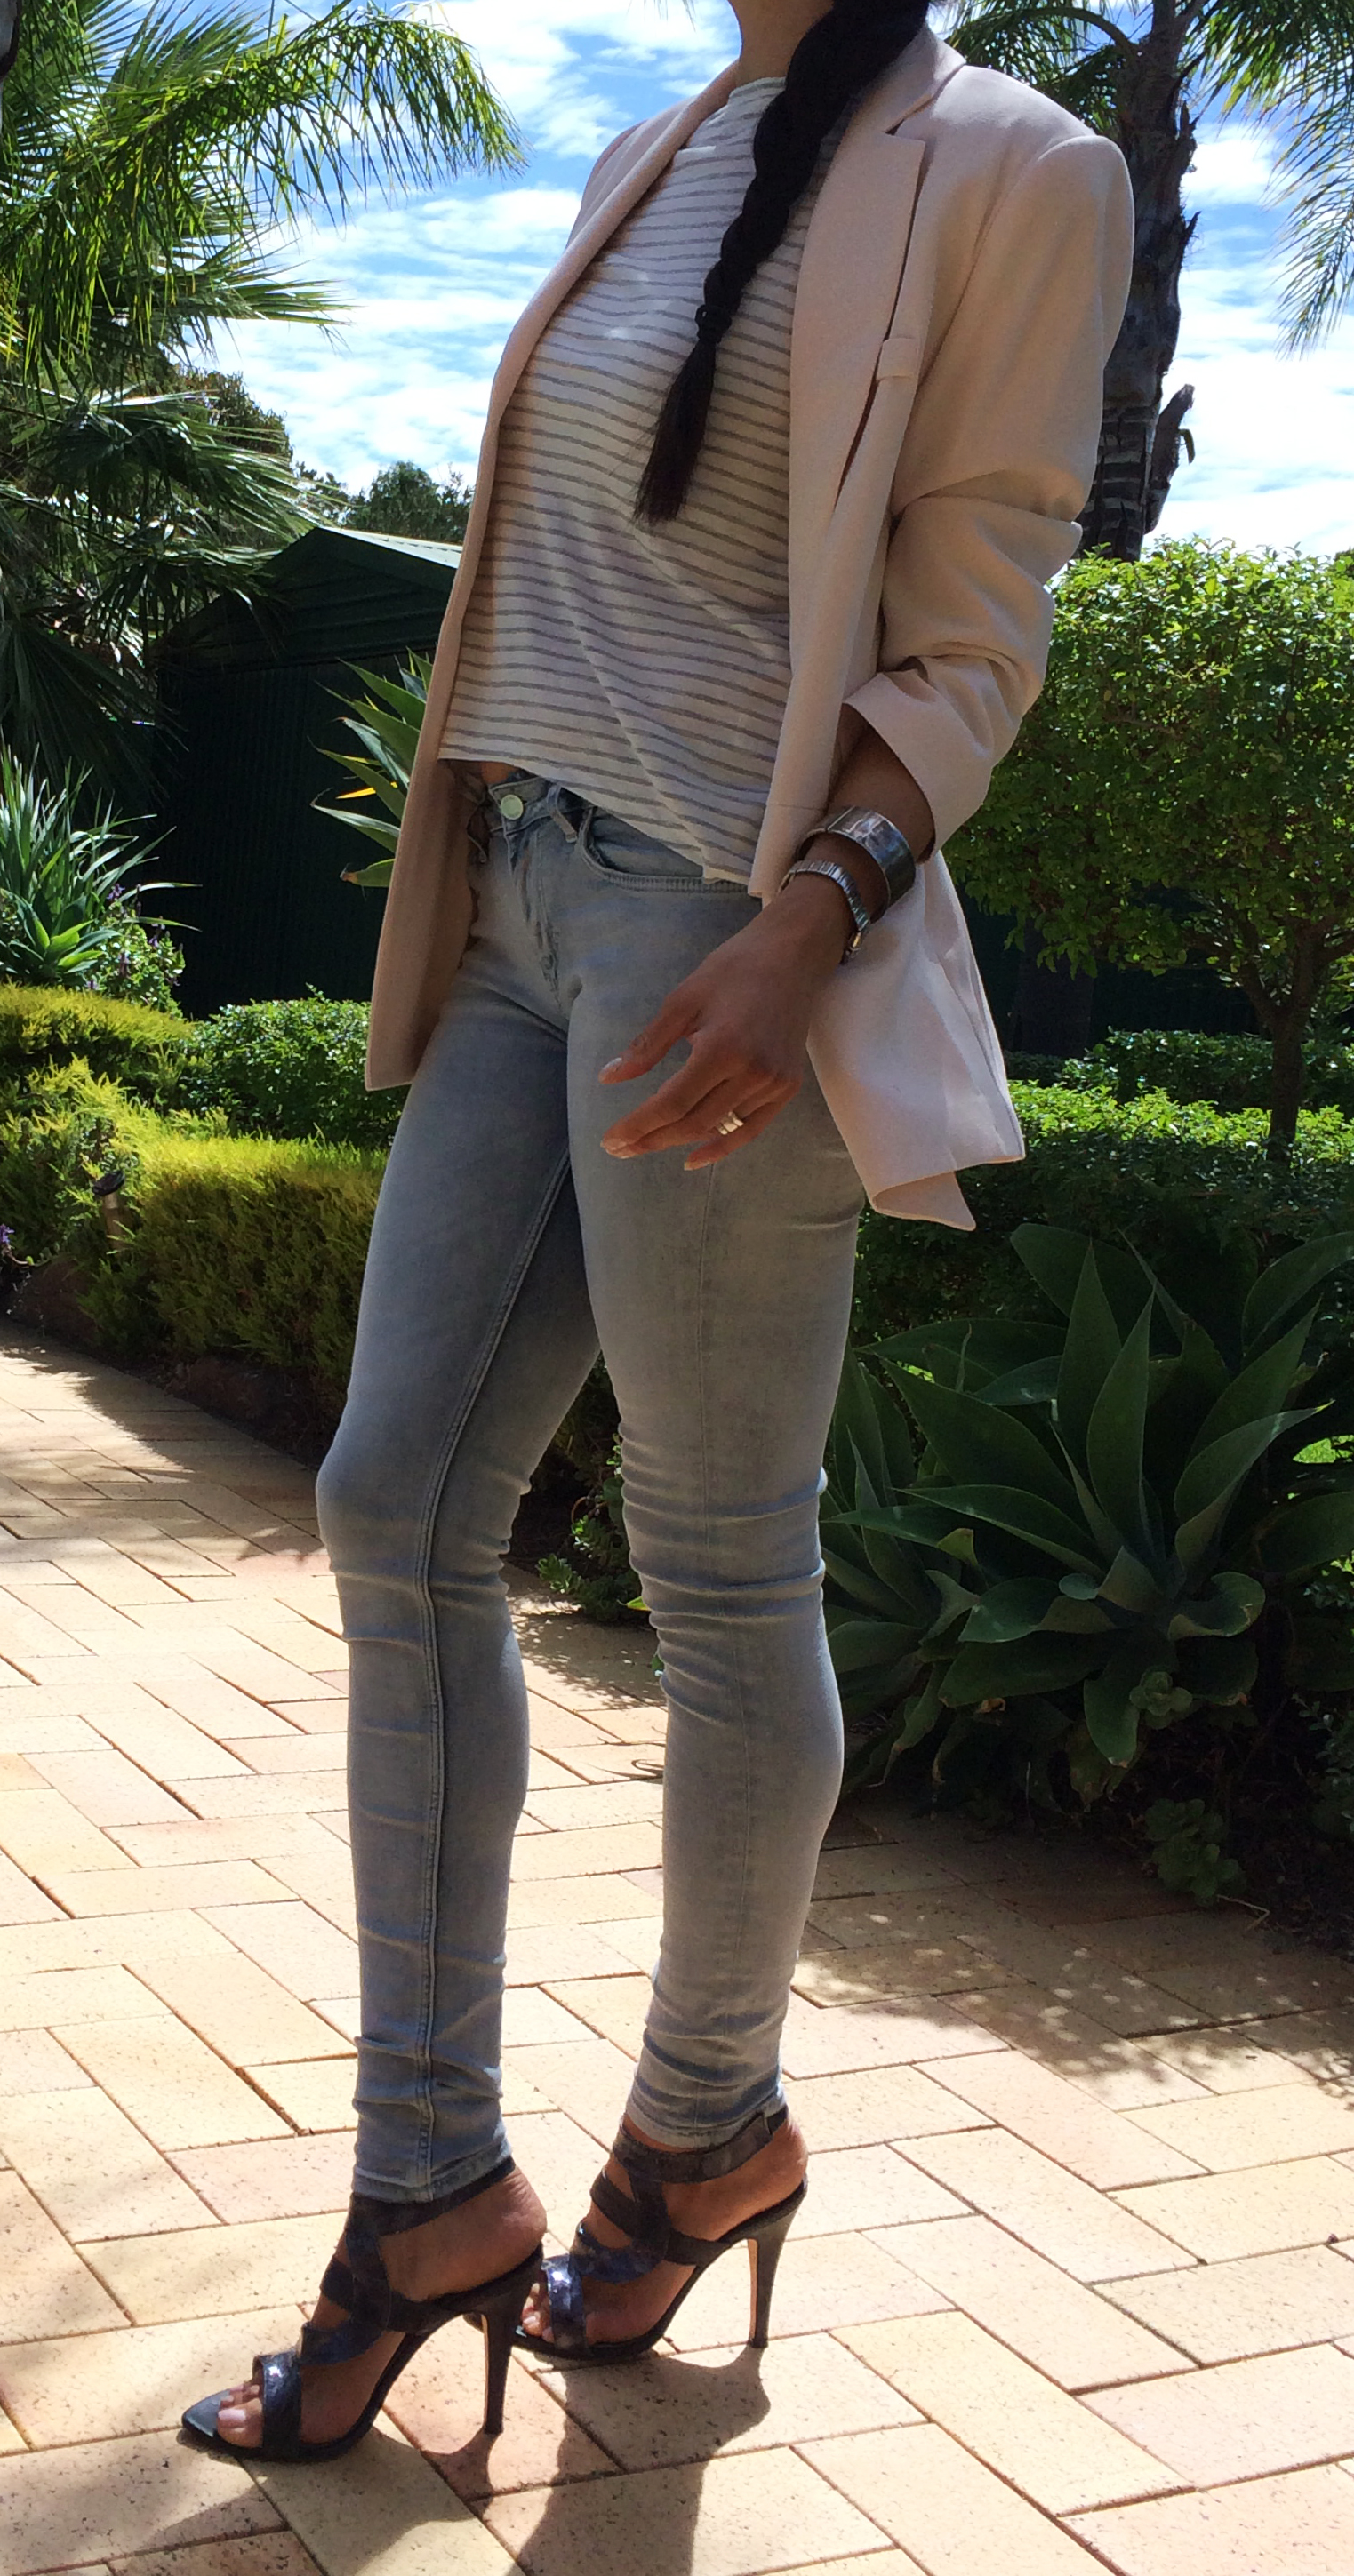 Tahina Mary-Kyri Shoes worn with Saba striped cowl back top, Alexander mc Queen jeans and  apricot blazer. Contrasting silver cuffs combine with the metallic silver in the Tahina shoes.